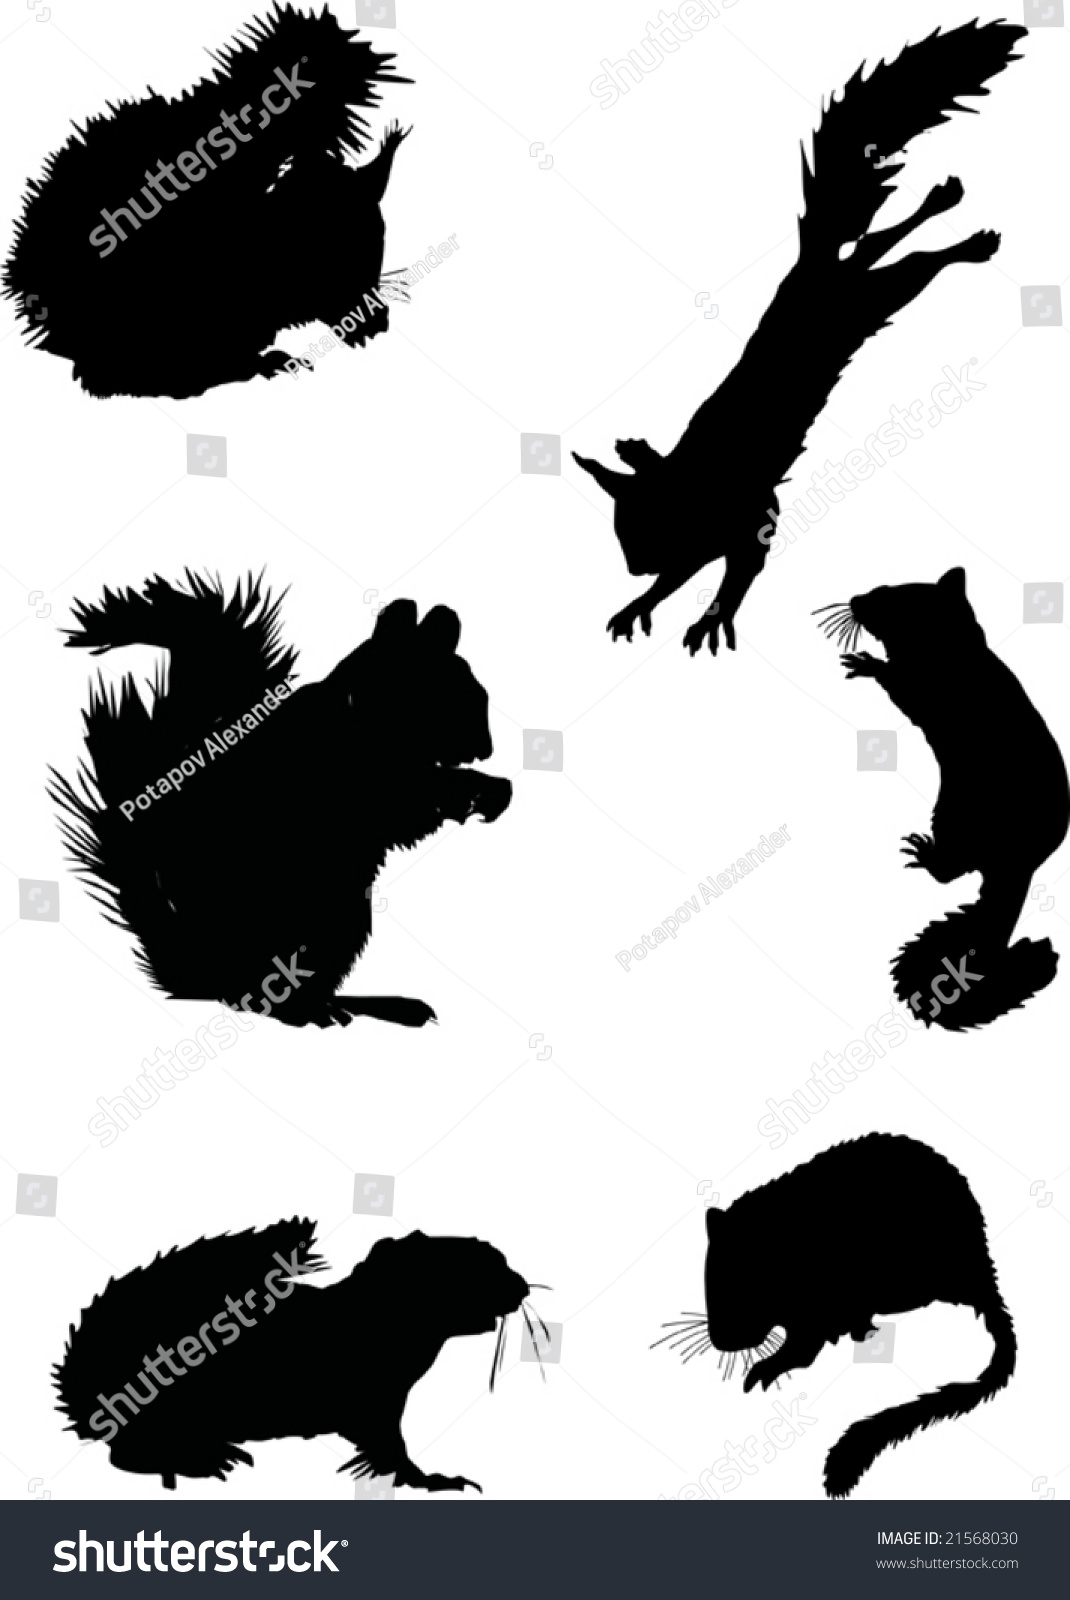 illustration with six squirrel silhouettes isolated on white  - illustration with six squirrel silhouettes isolated on white background   shutterstock